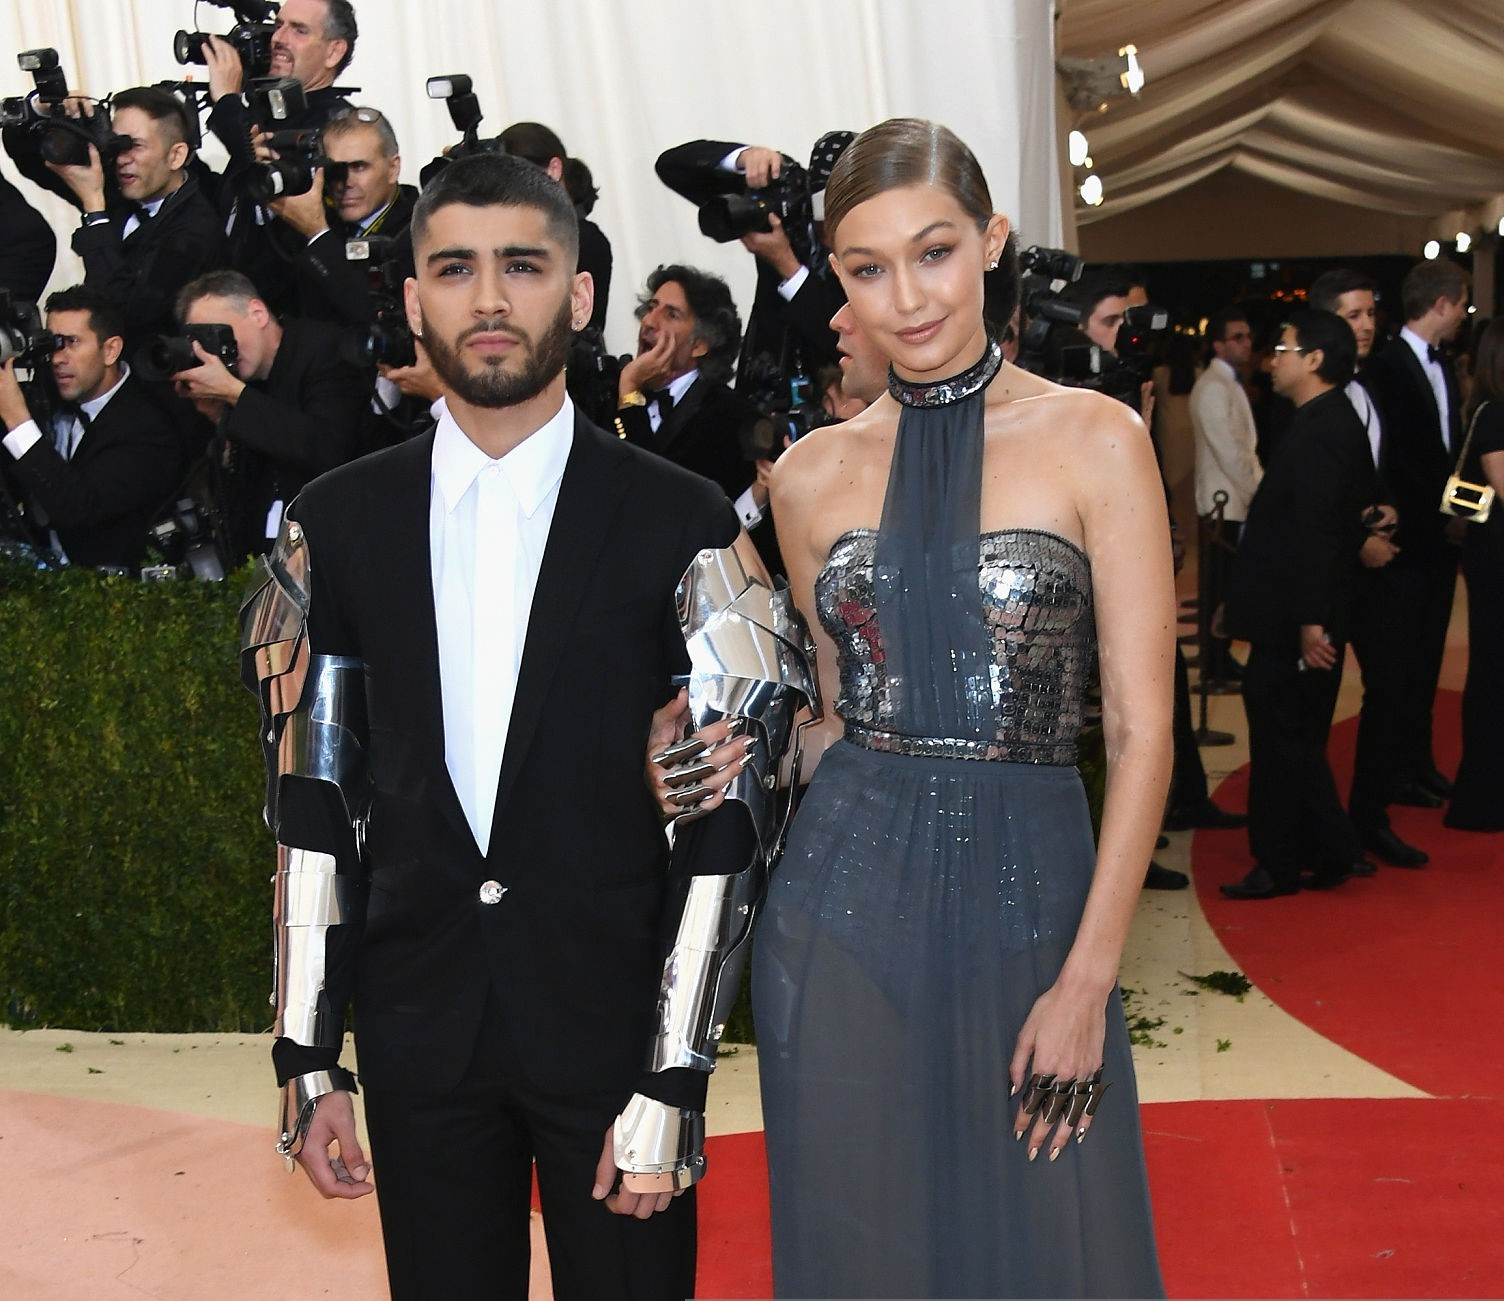 Gigi Hadid and Zayn Malik become center of attention for their On and off relationship